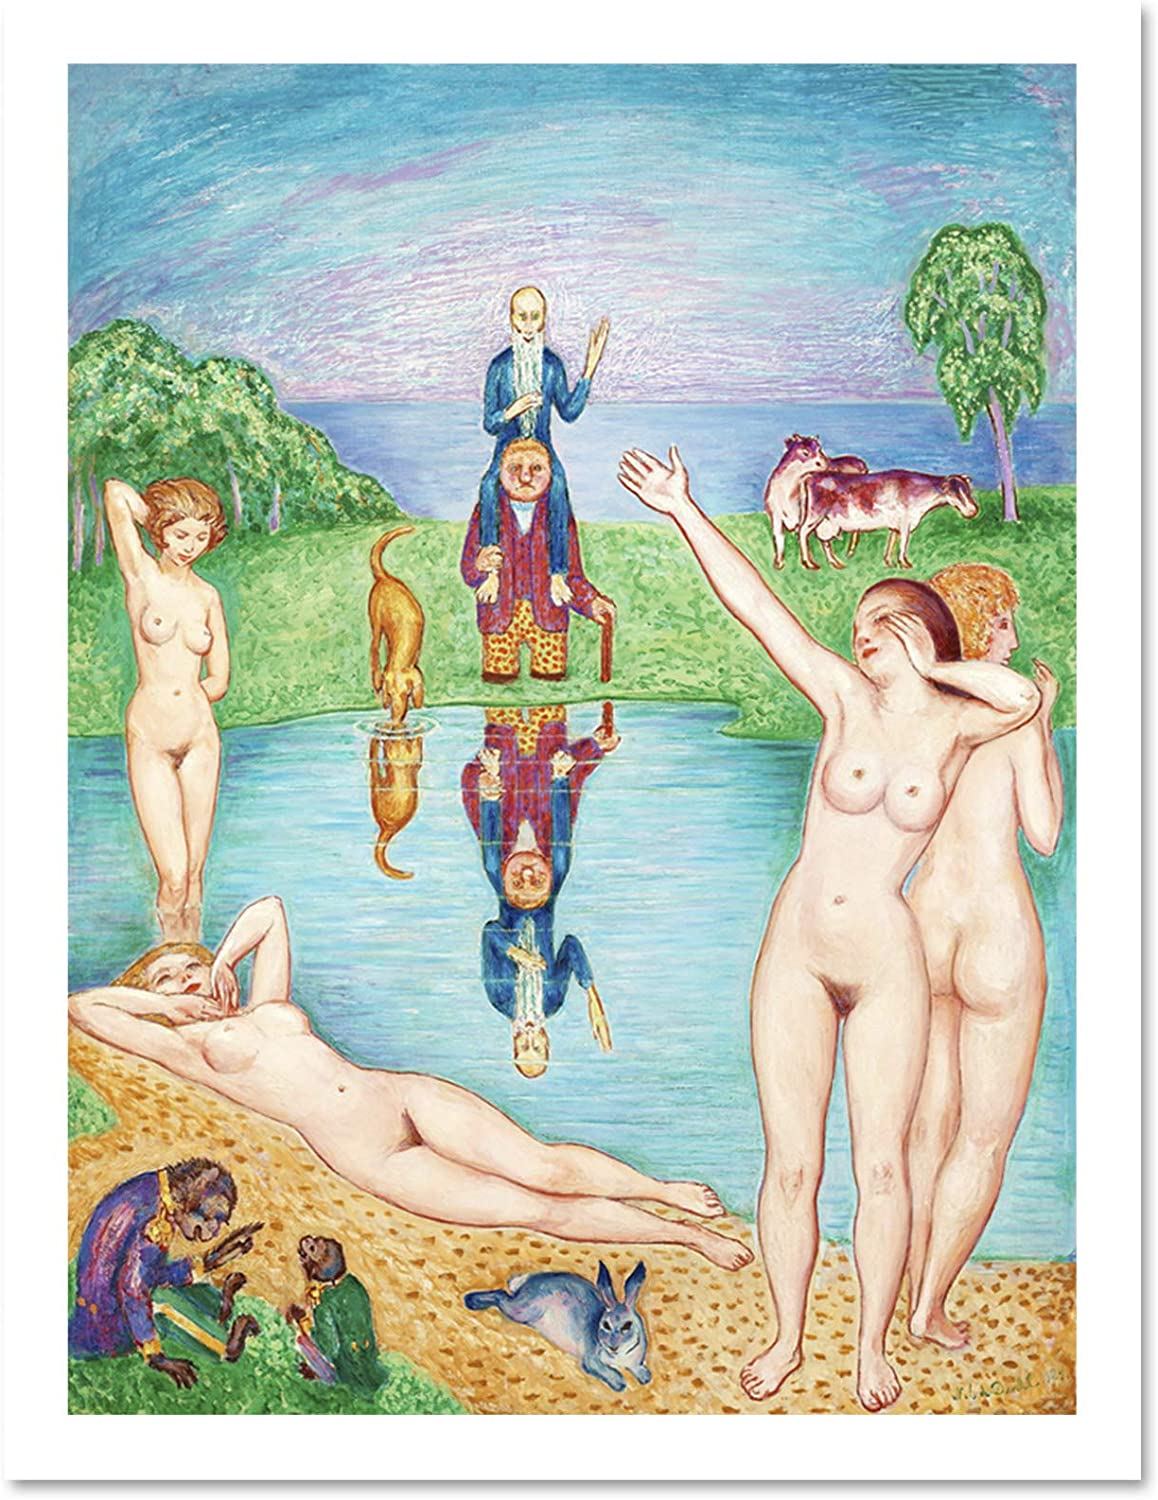 NILS VON DARDEL ATERKOMSTEN TILL UNGDOMENS PLAYGROUNDS YOUTH PRINT POSTER LF270